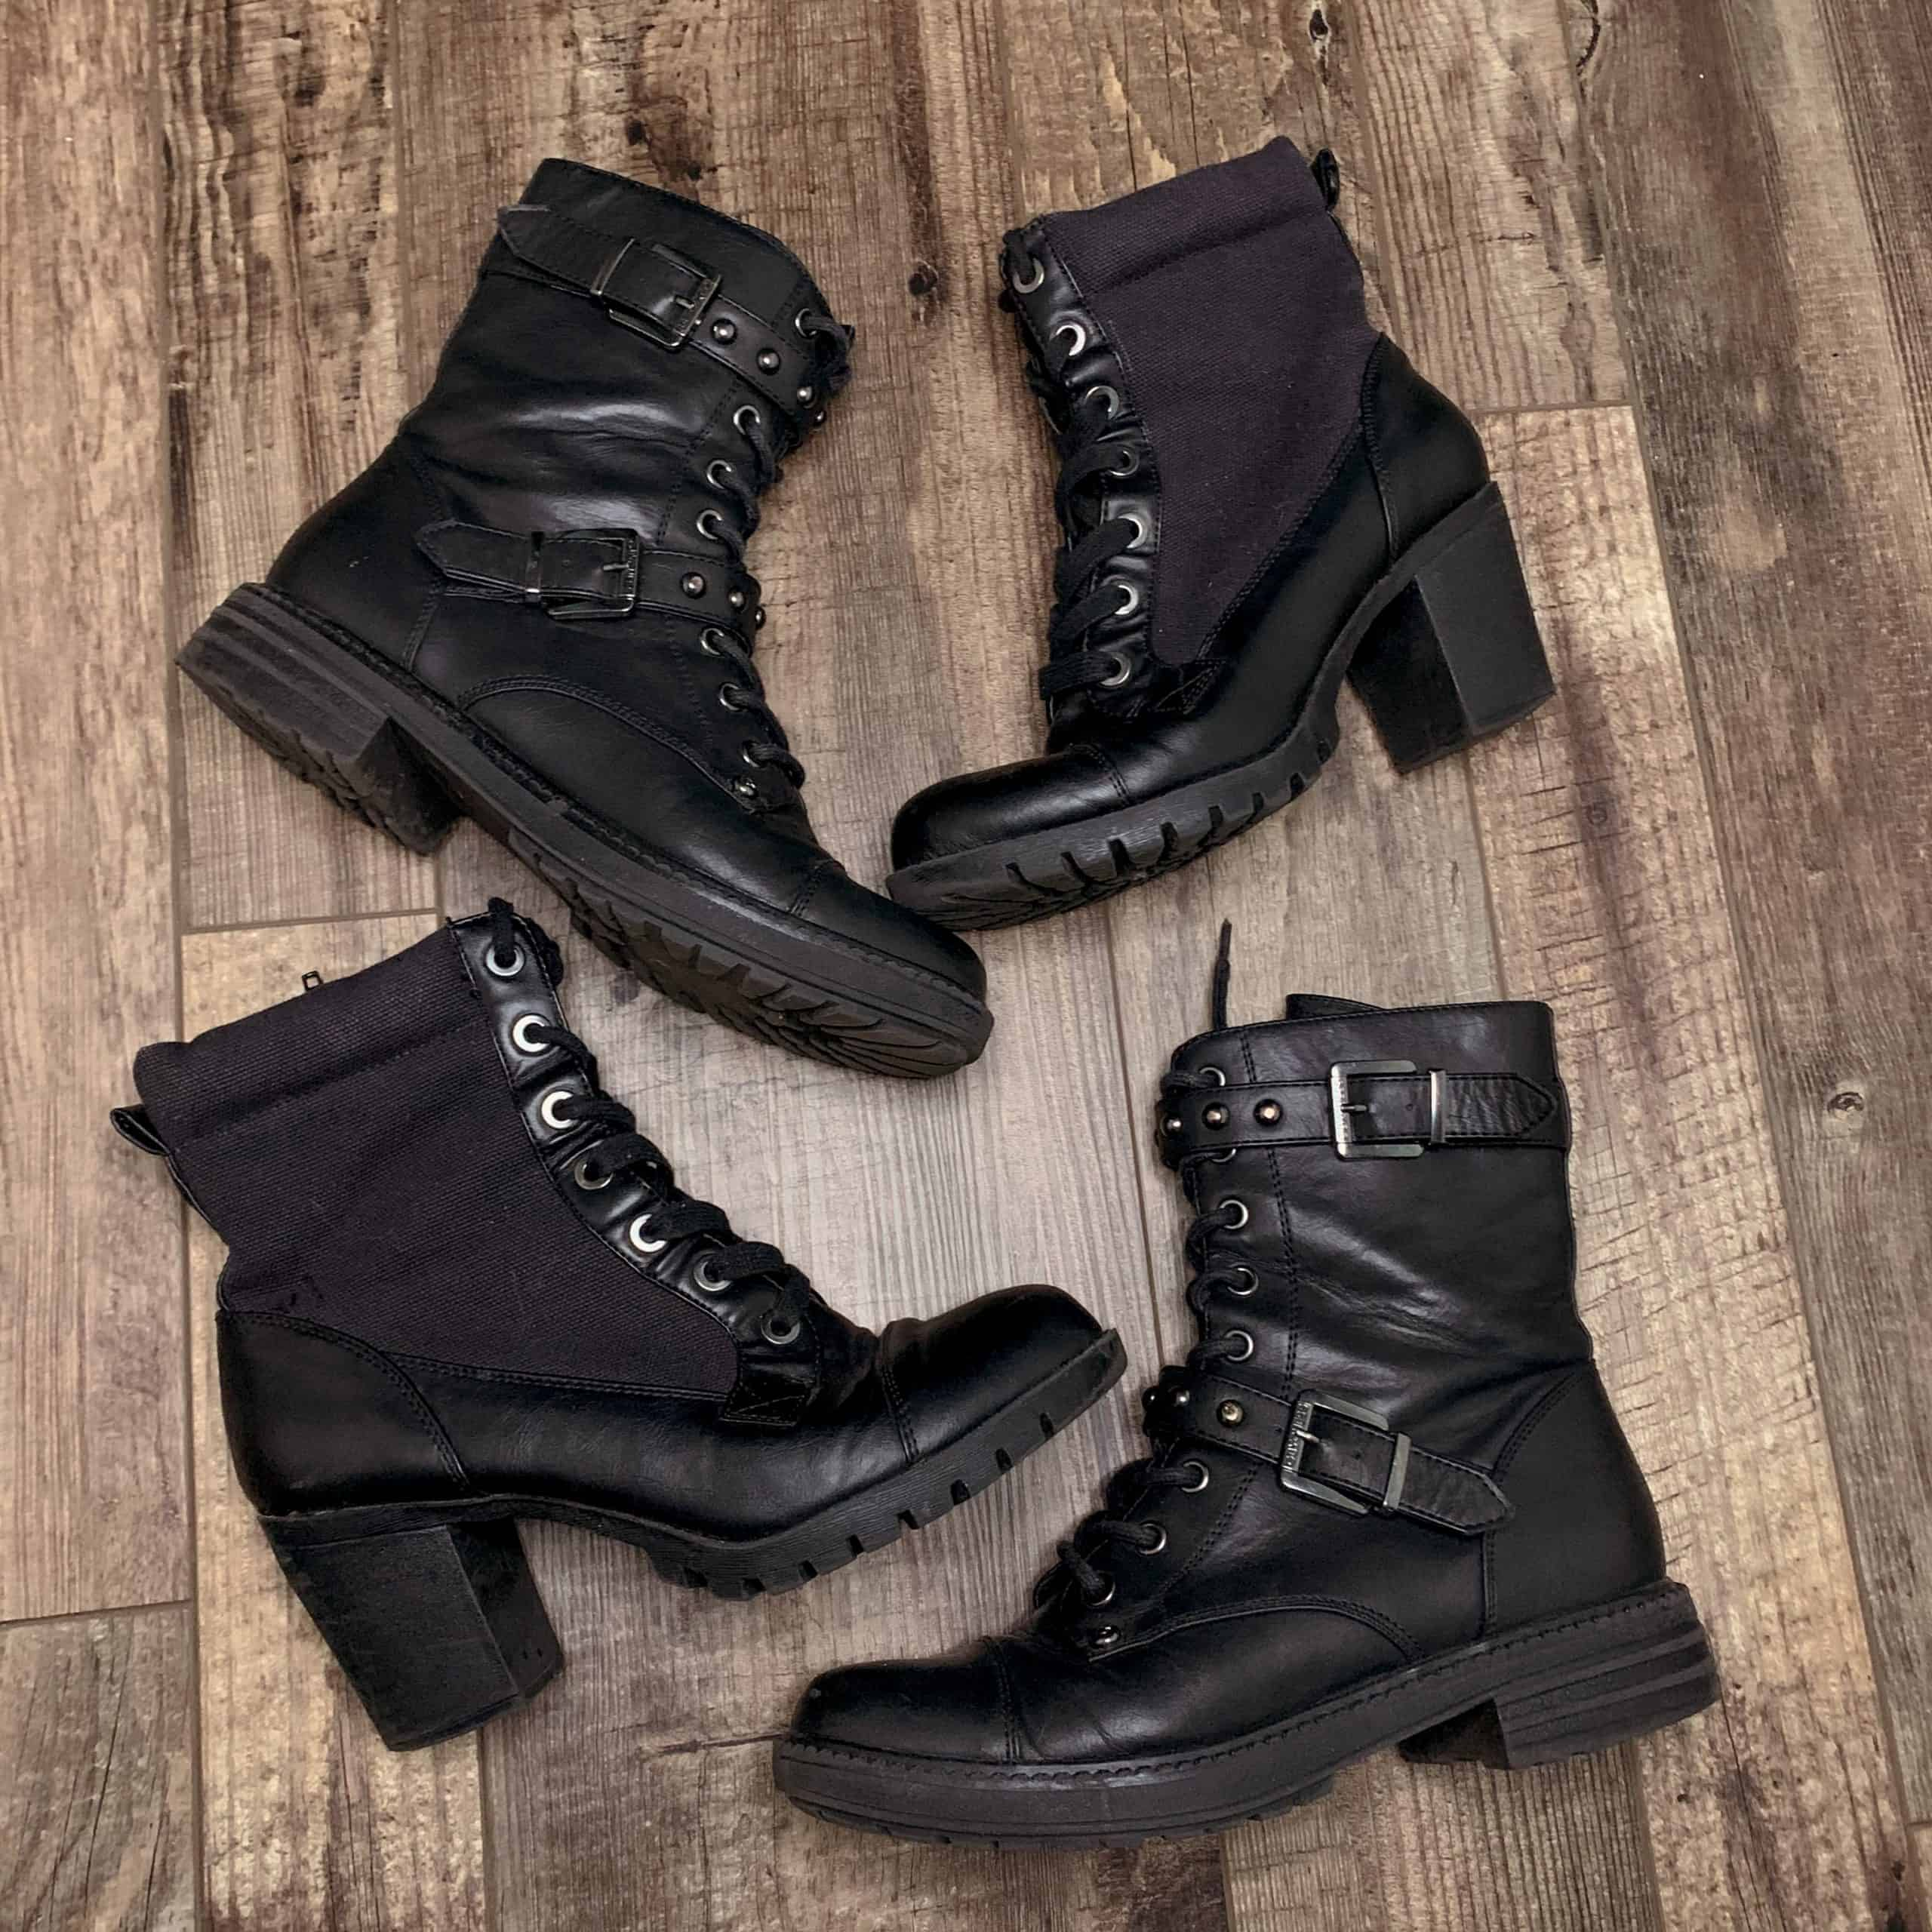 Combat Boots For Cheap And Cute Boots For Women Under $100